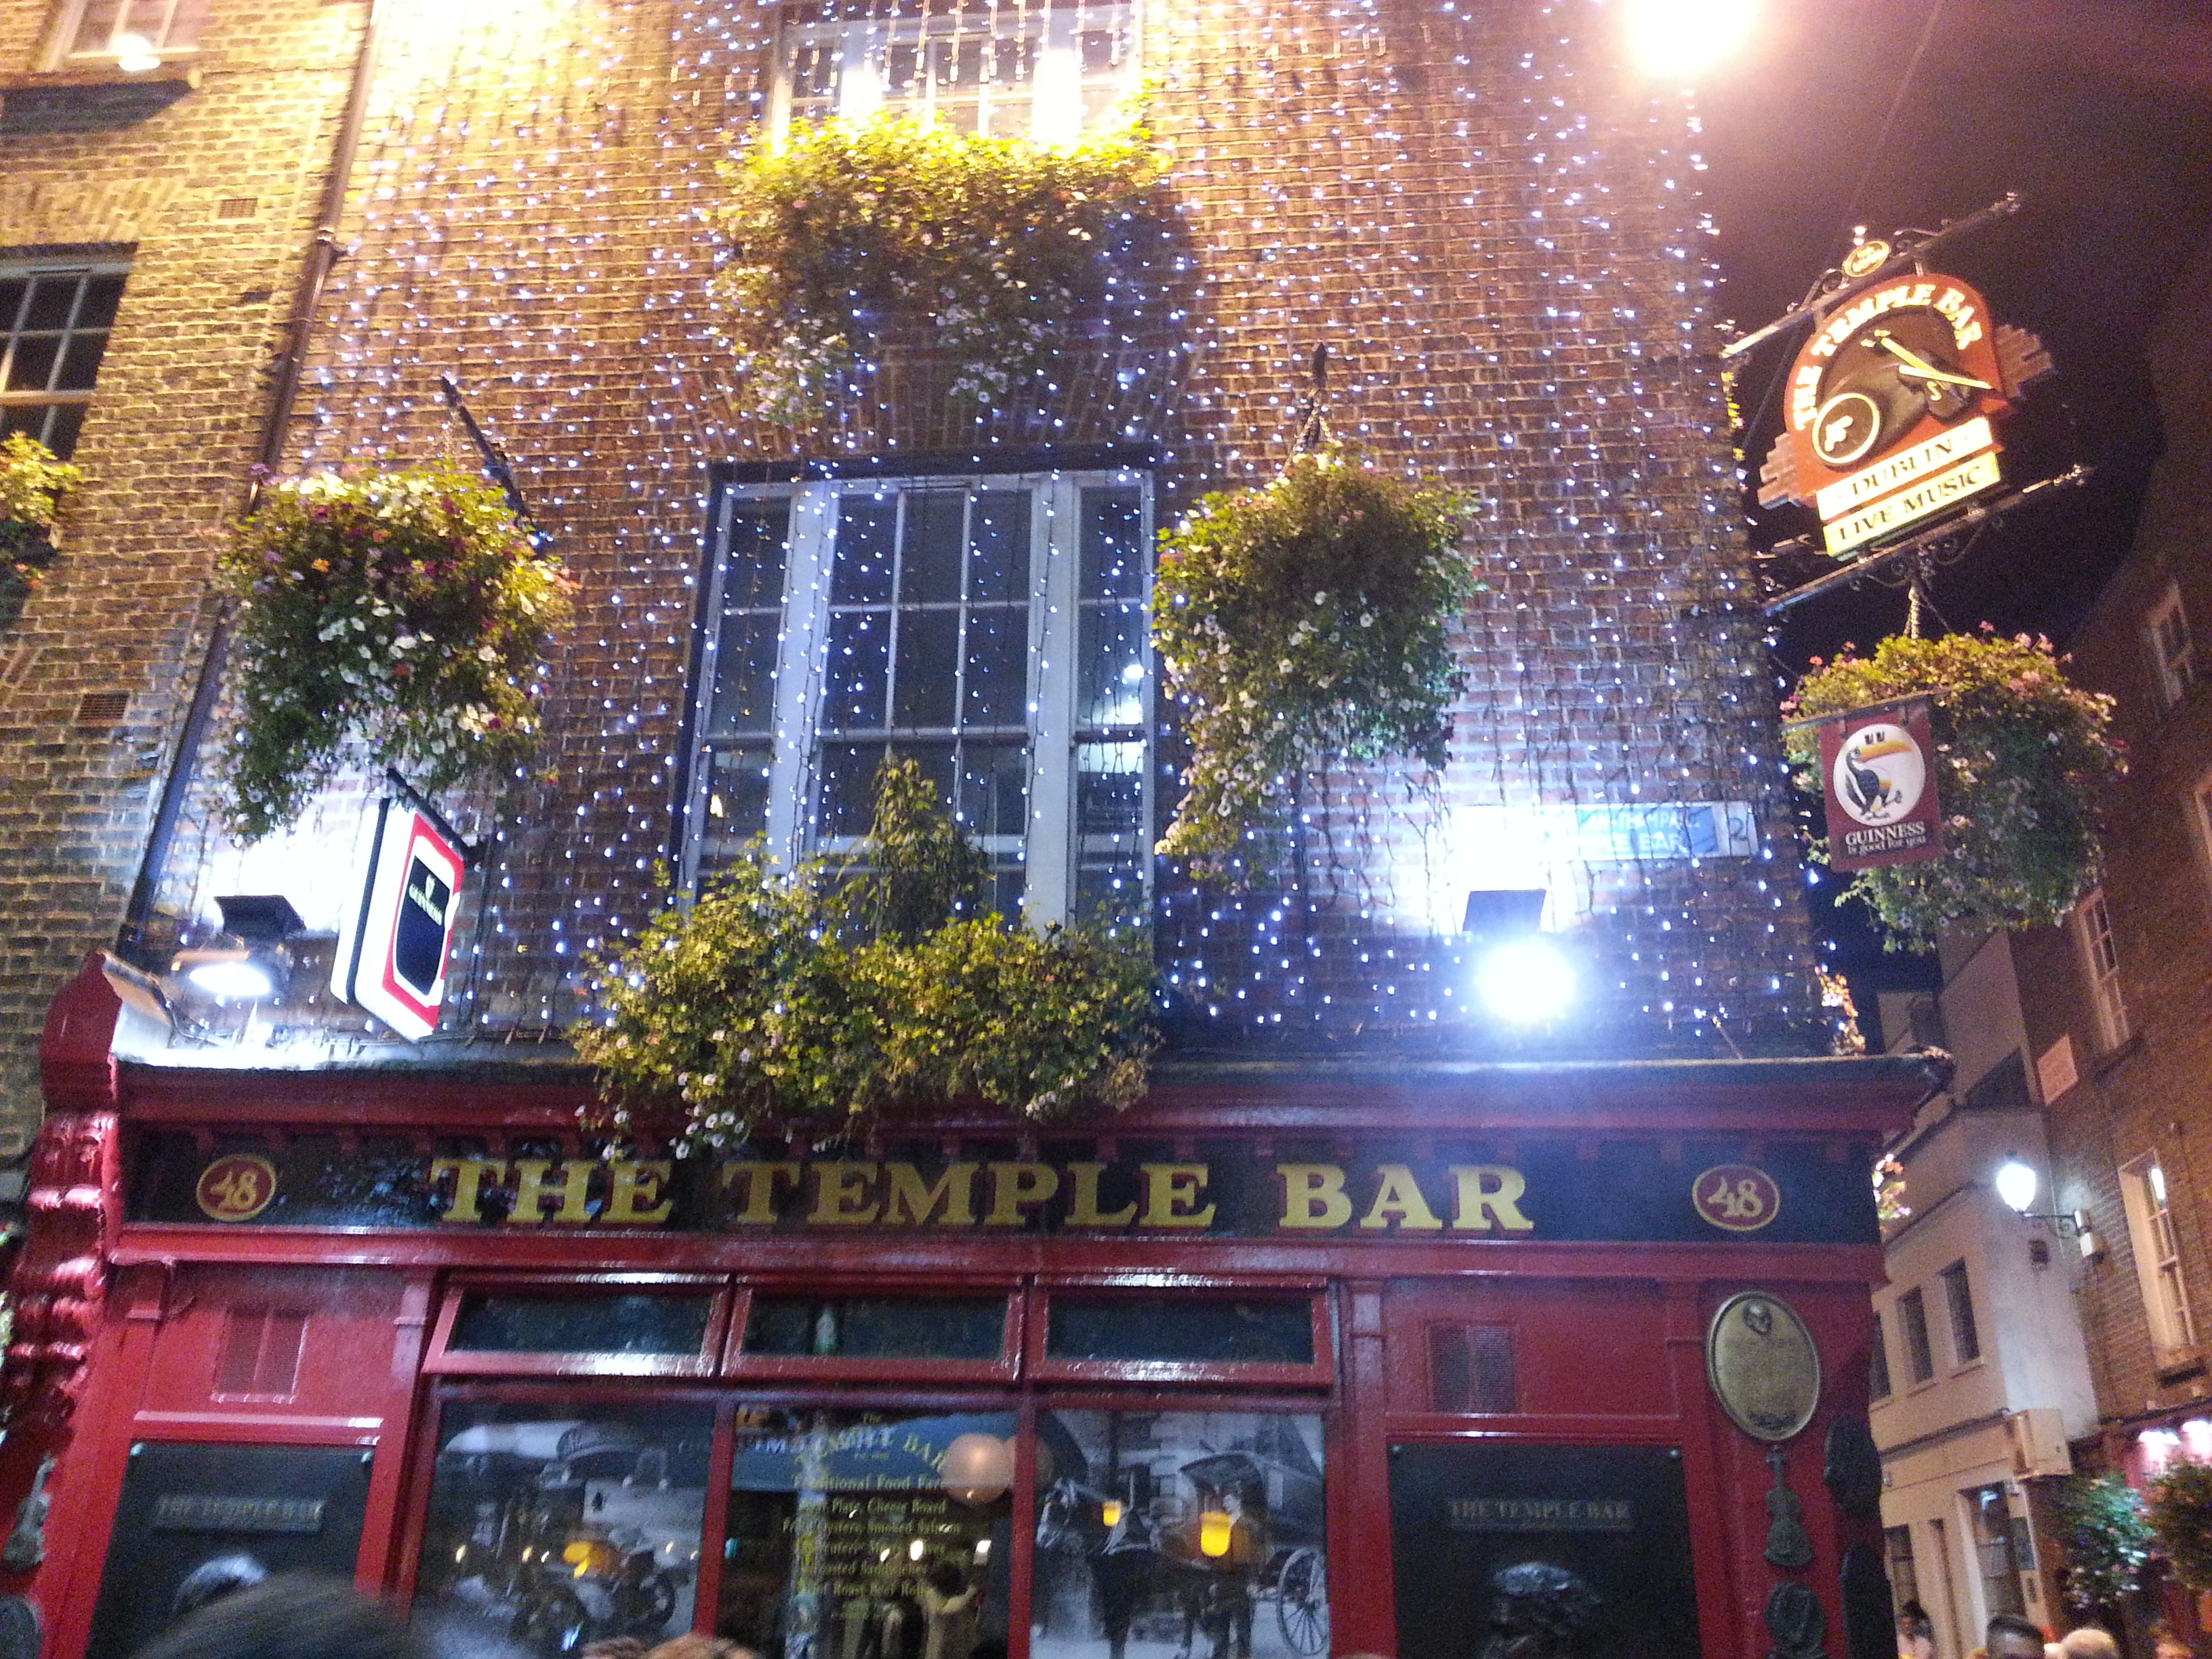 The Temple Bar pub, one of the most popular pubs in Dublin centre